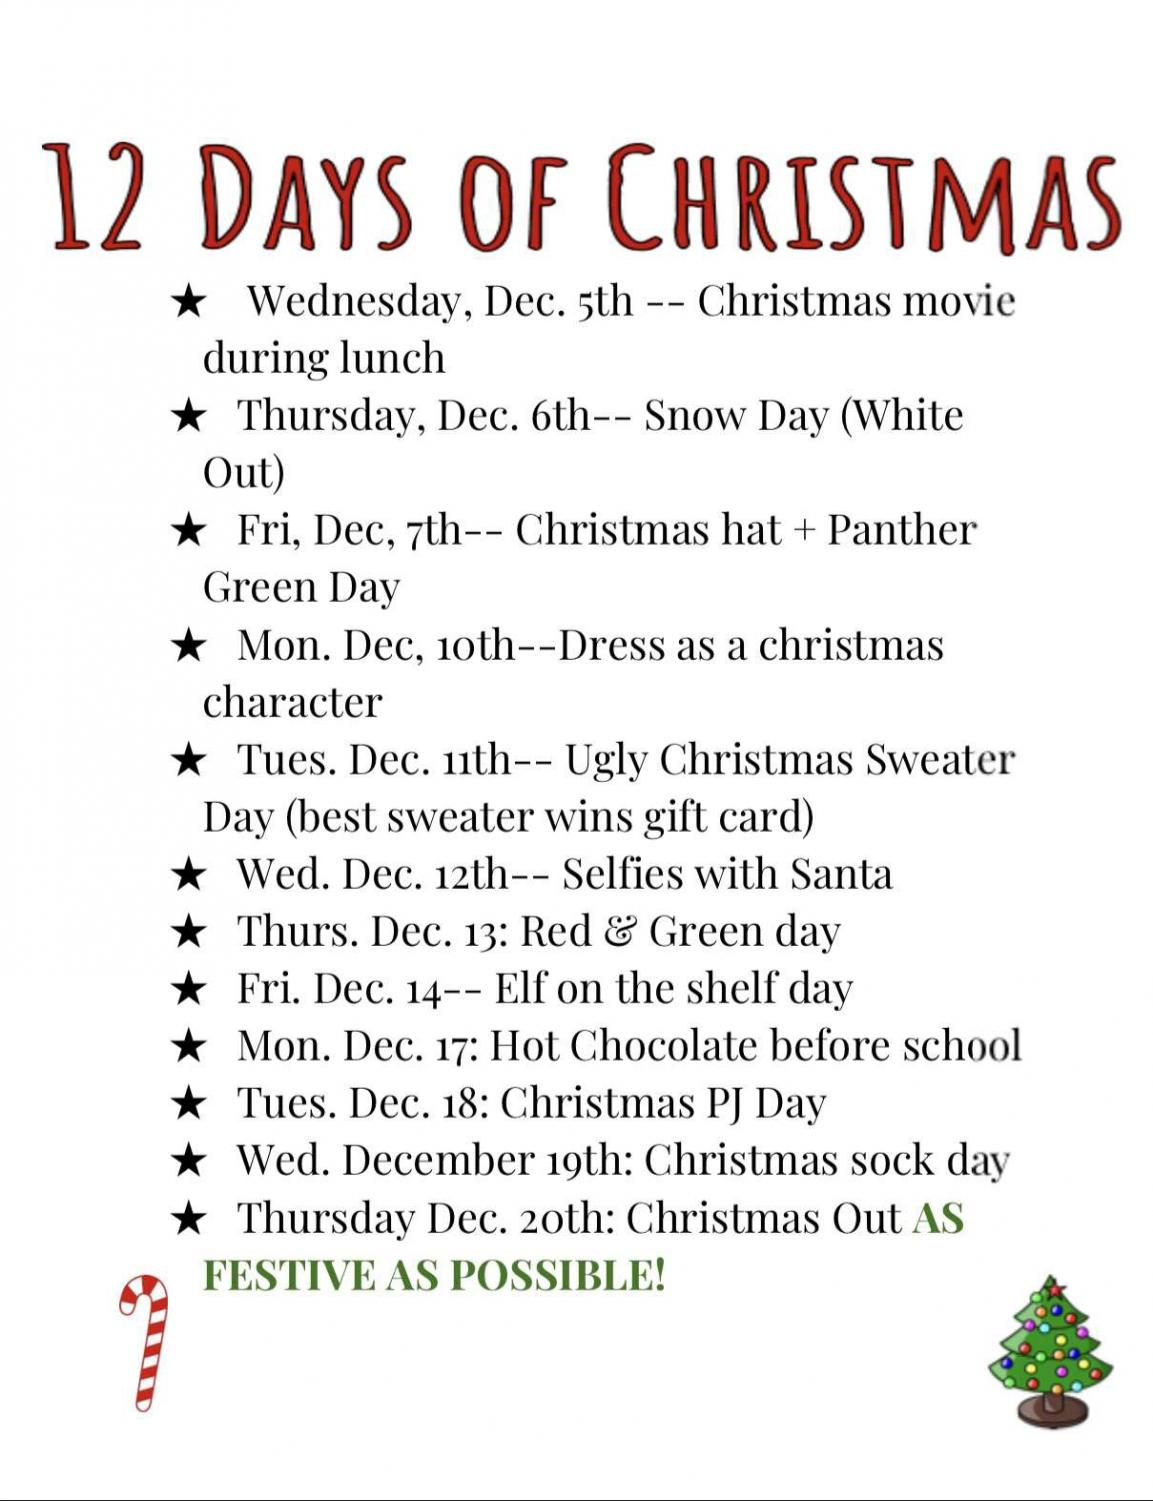 12 Days of Christmas spirit week spirit days